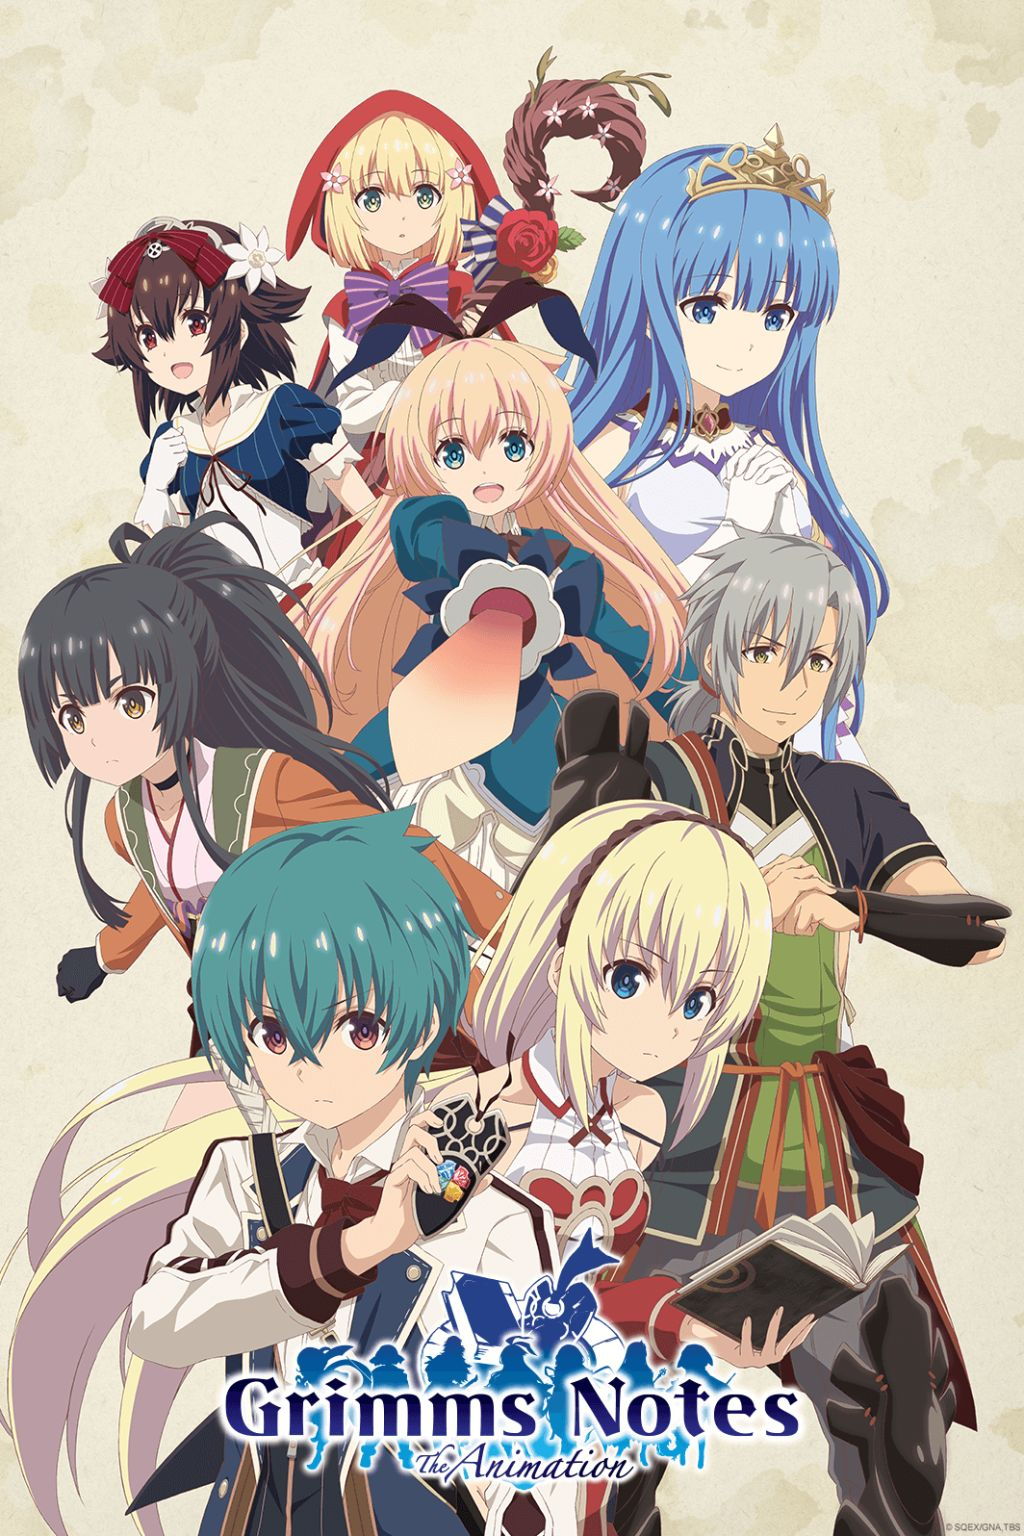 Grimms Notes Anime Visual